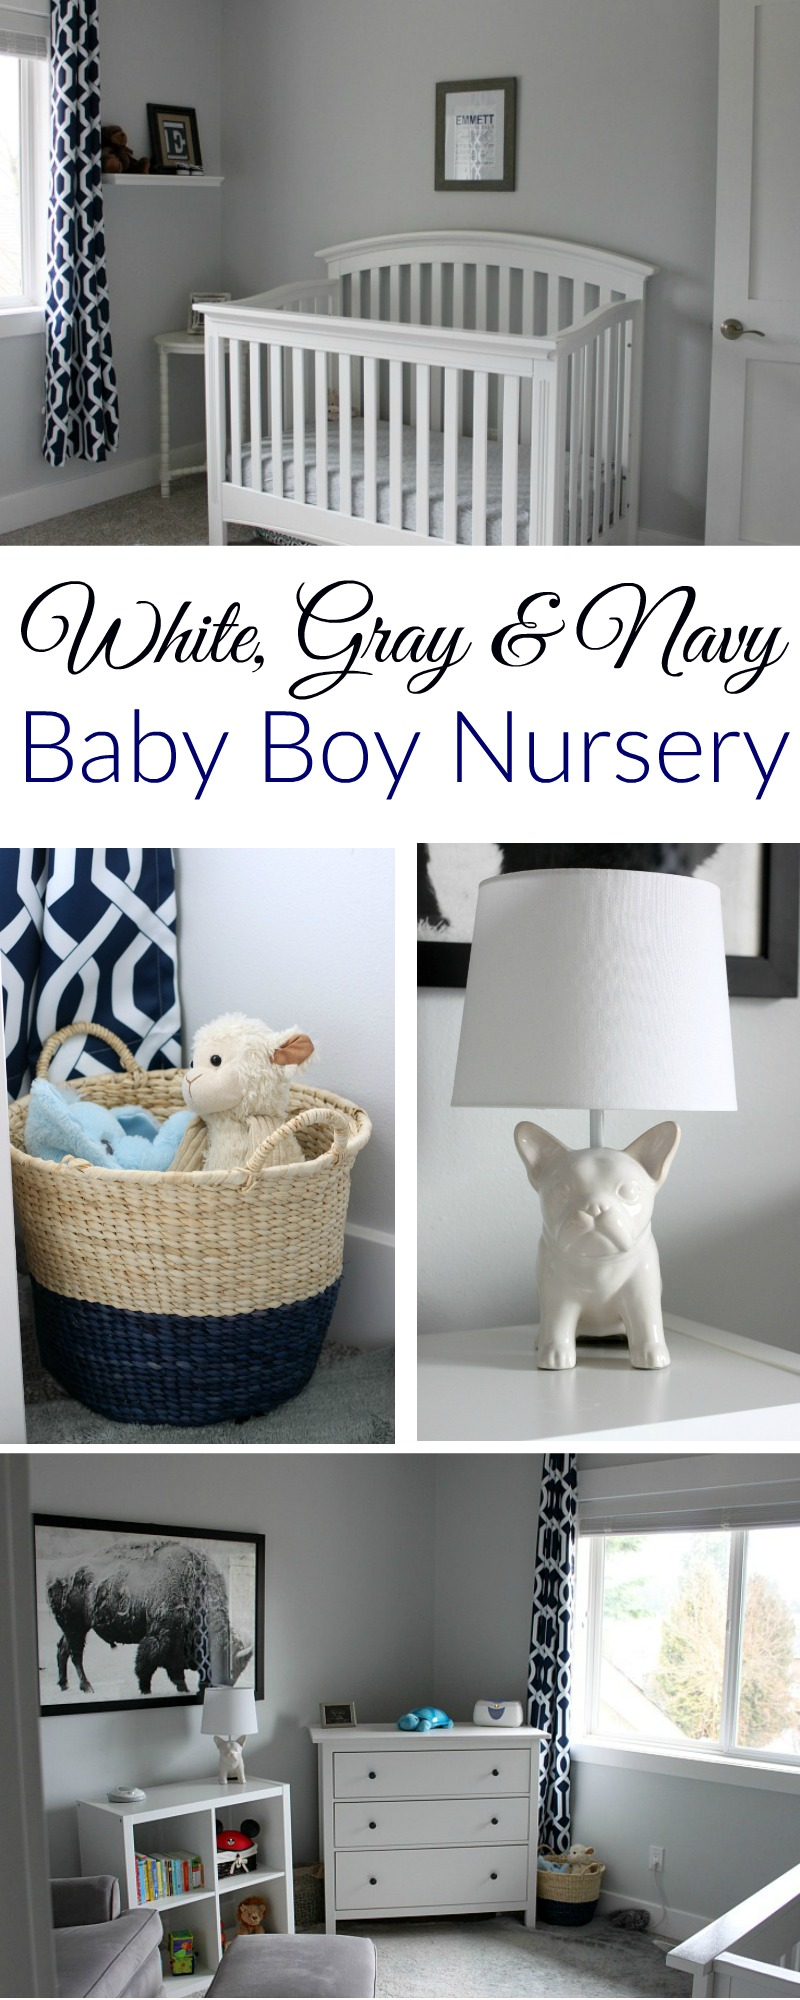 A simple and sweet as can be white, gray and navy baby boy nursery.